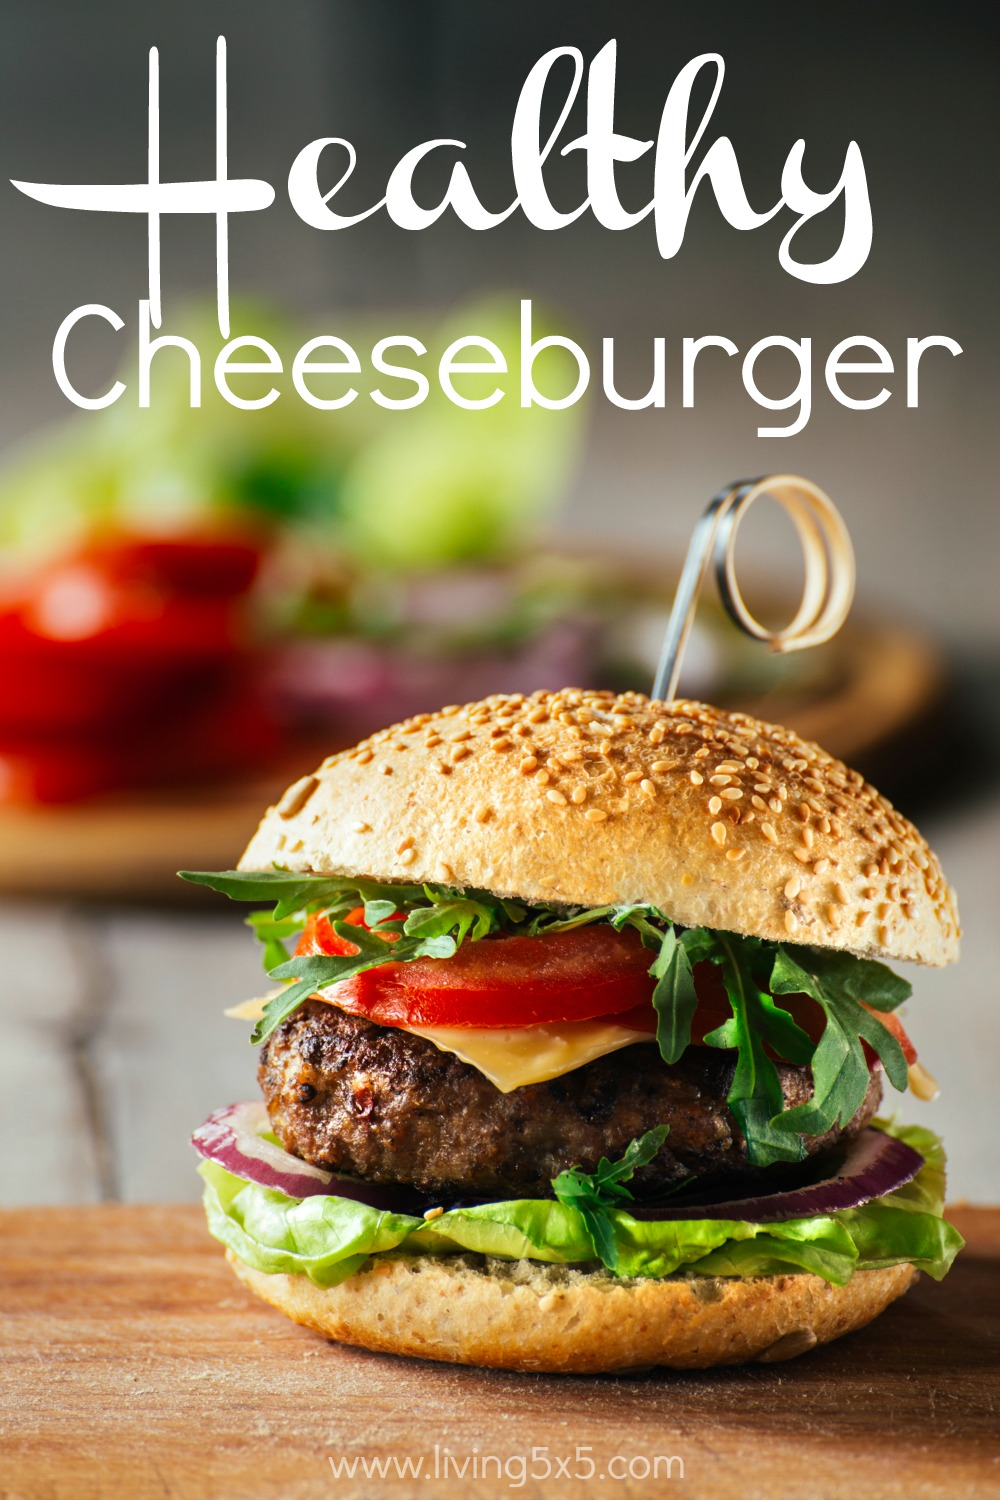 Burgers can be healthy, too. Try out this healthy cheeseburger recipe!